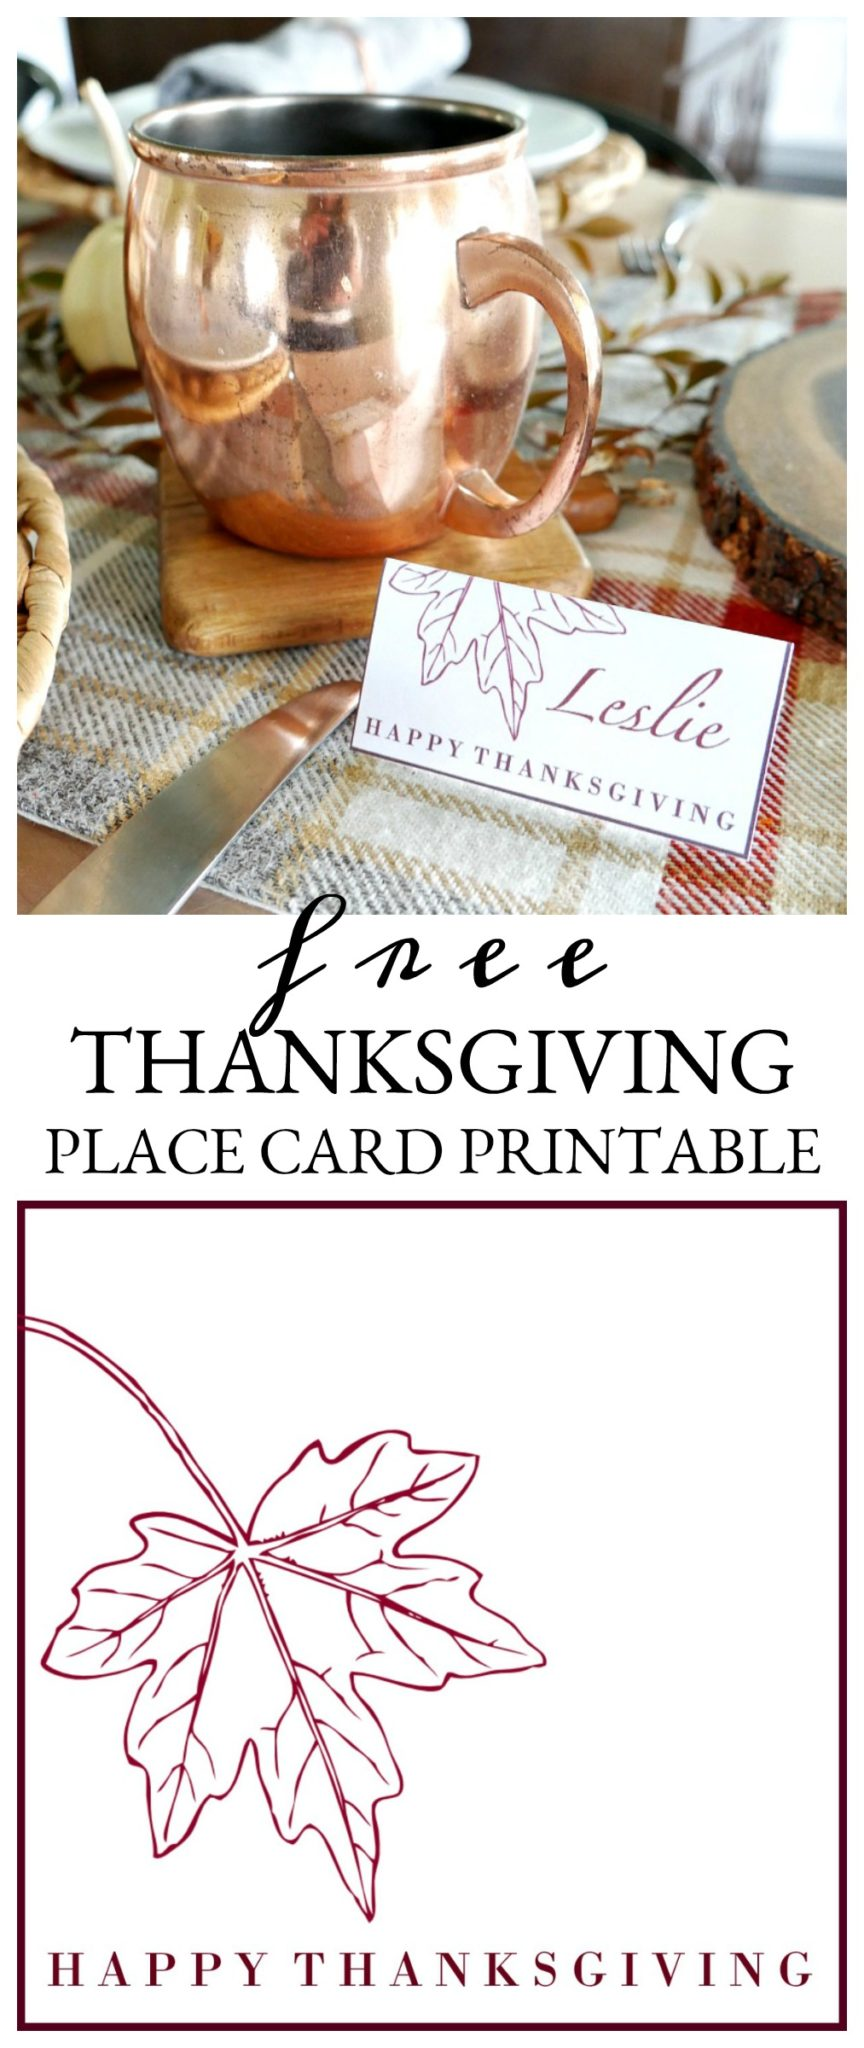 Simply download and print this FREE Thanksgiving Place Card Printable for your holiday table this year! Choose from three different colors.